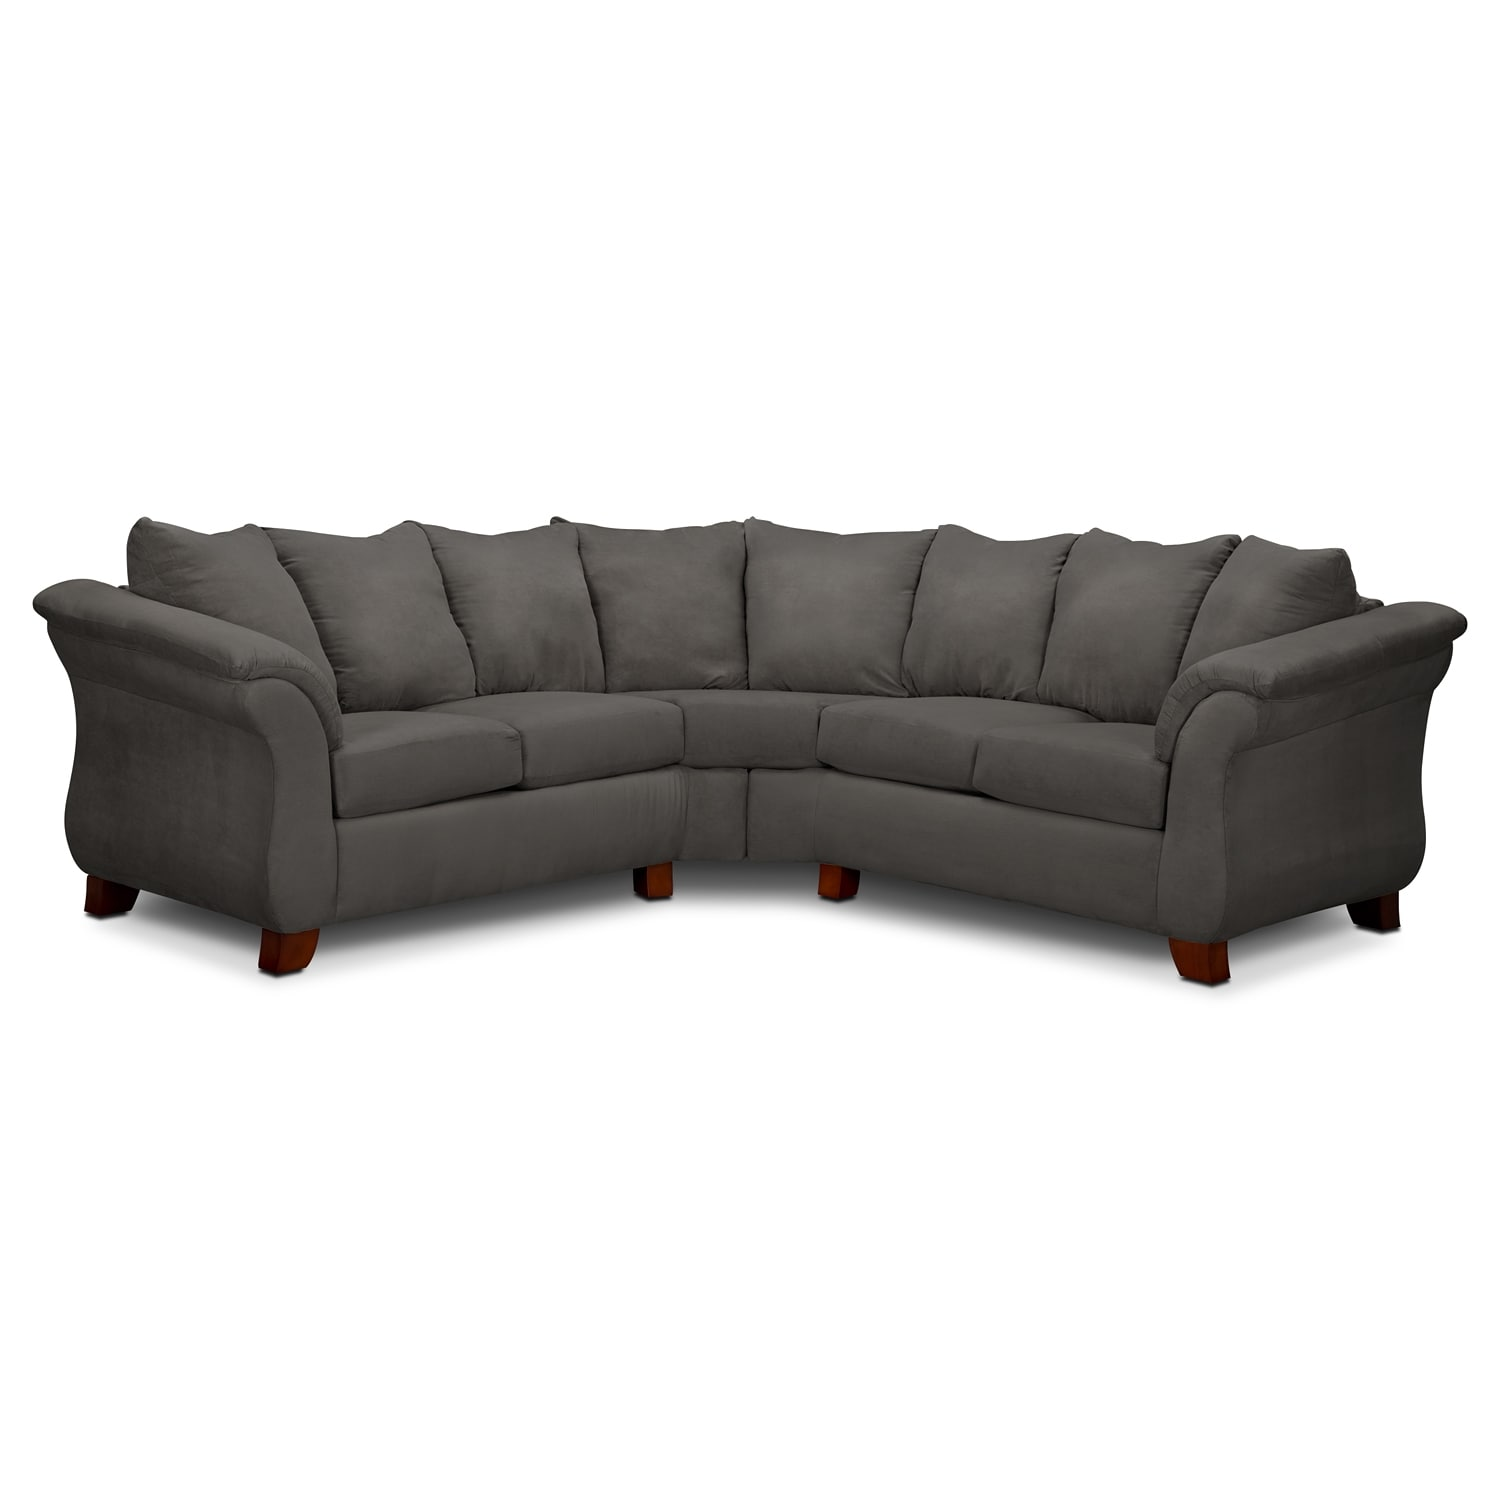 Adrian 2-Piece Sectional - Graphite